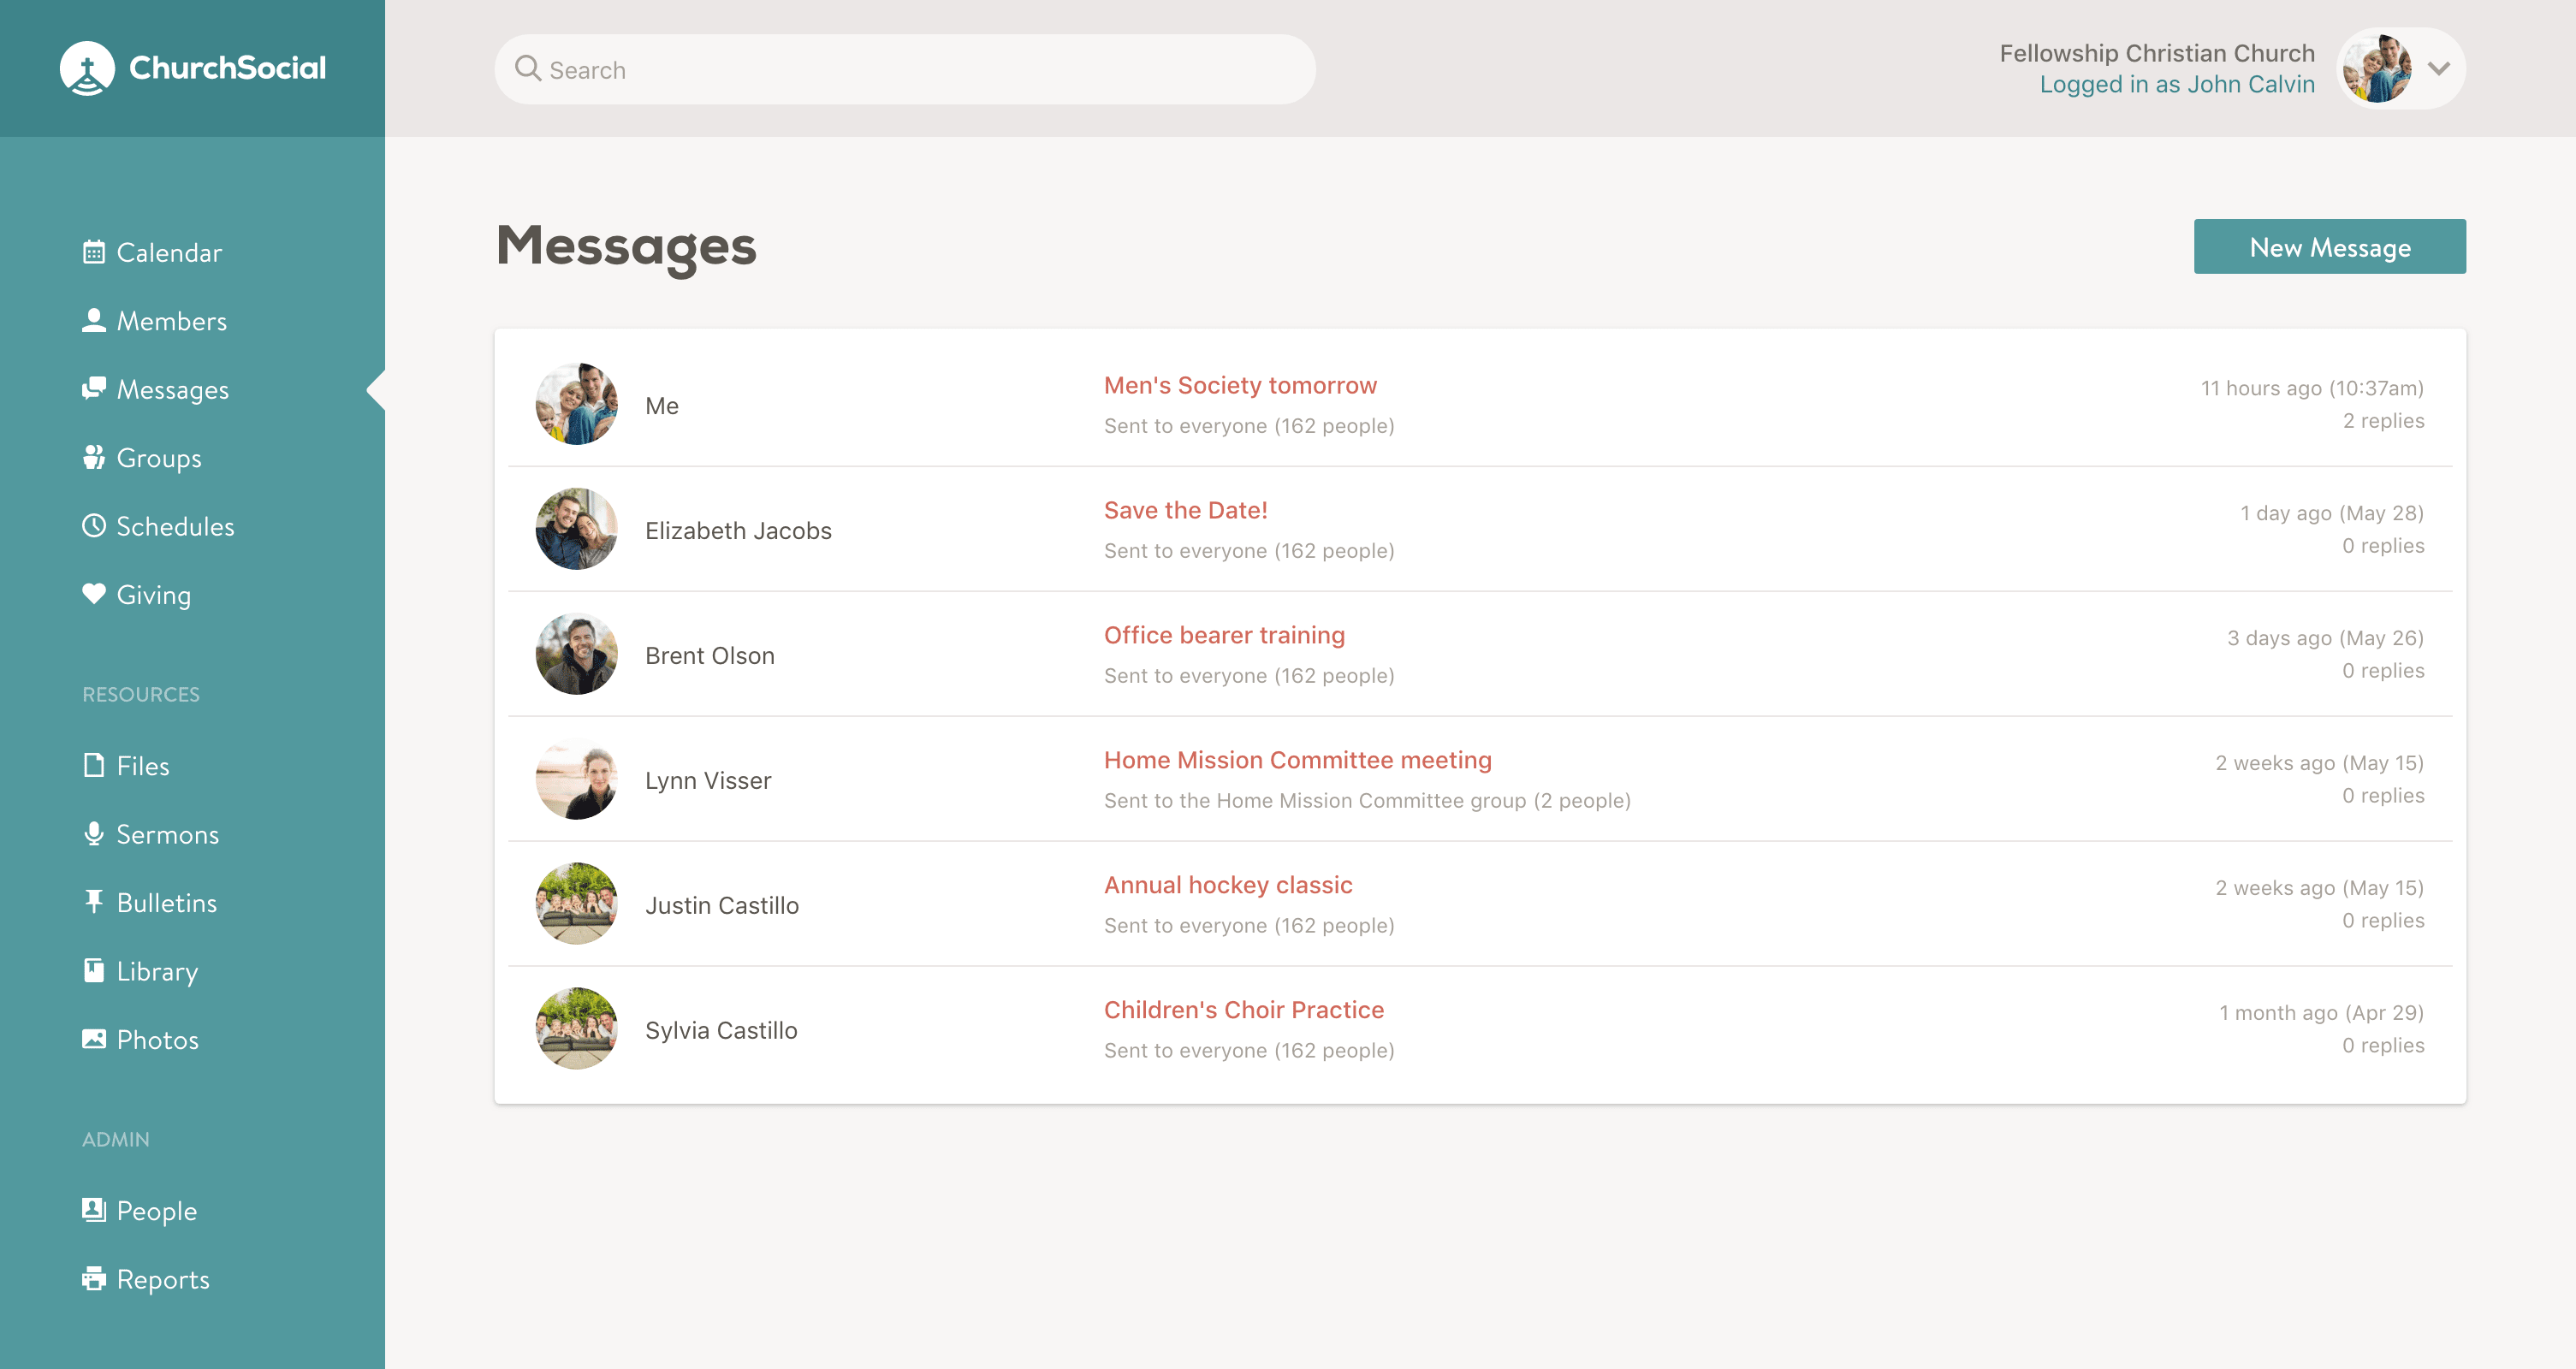 Screenshot of the messages page